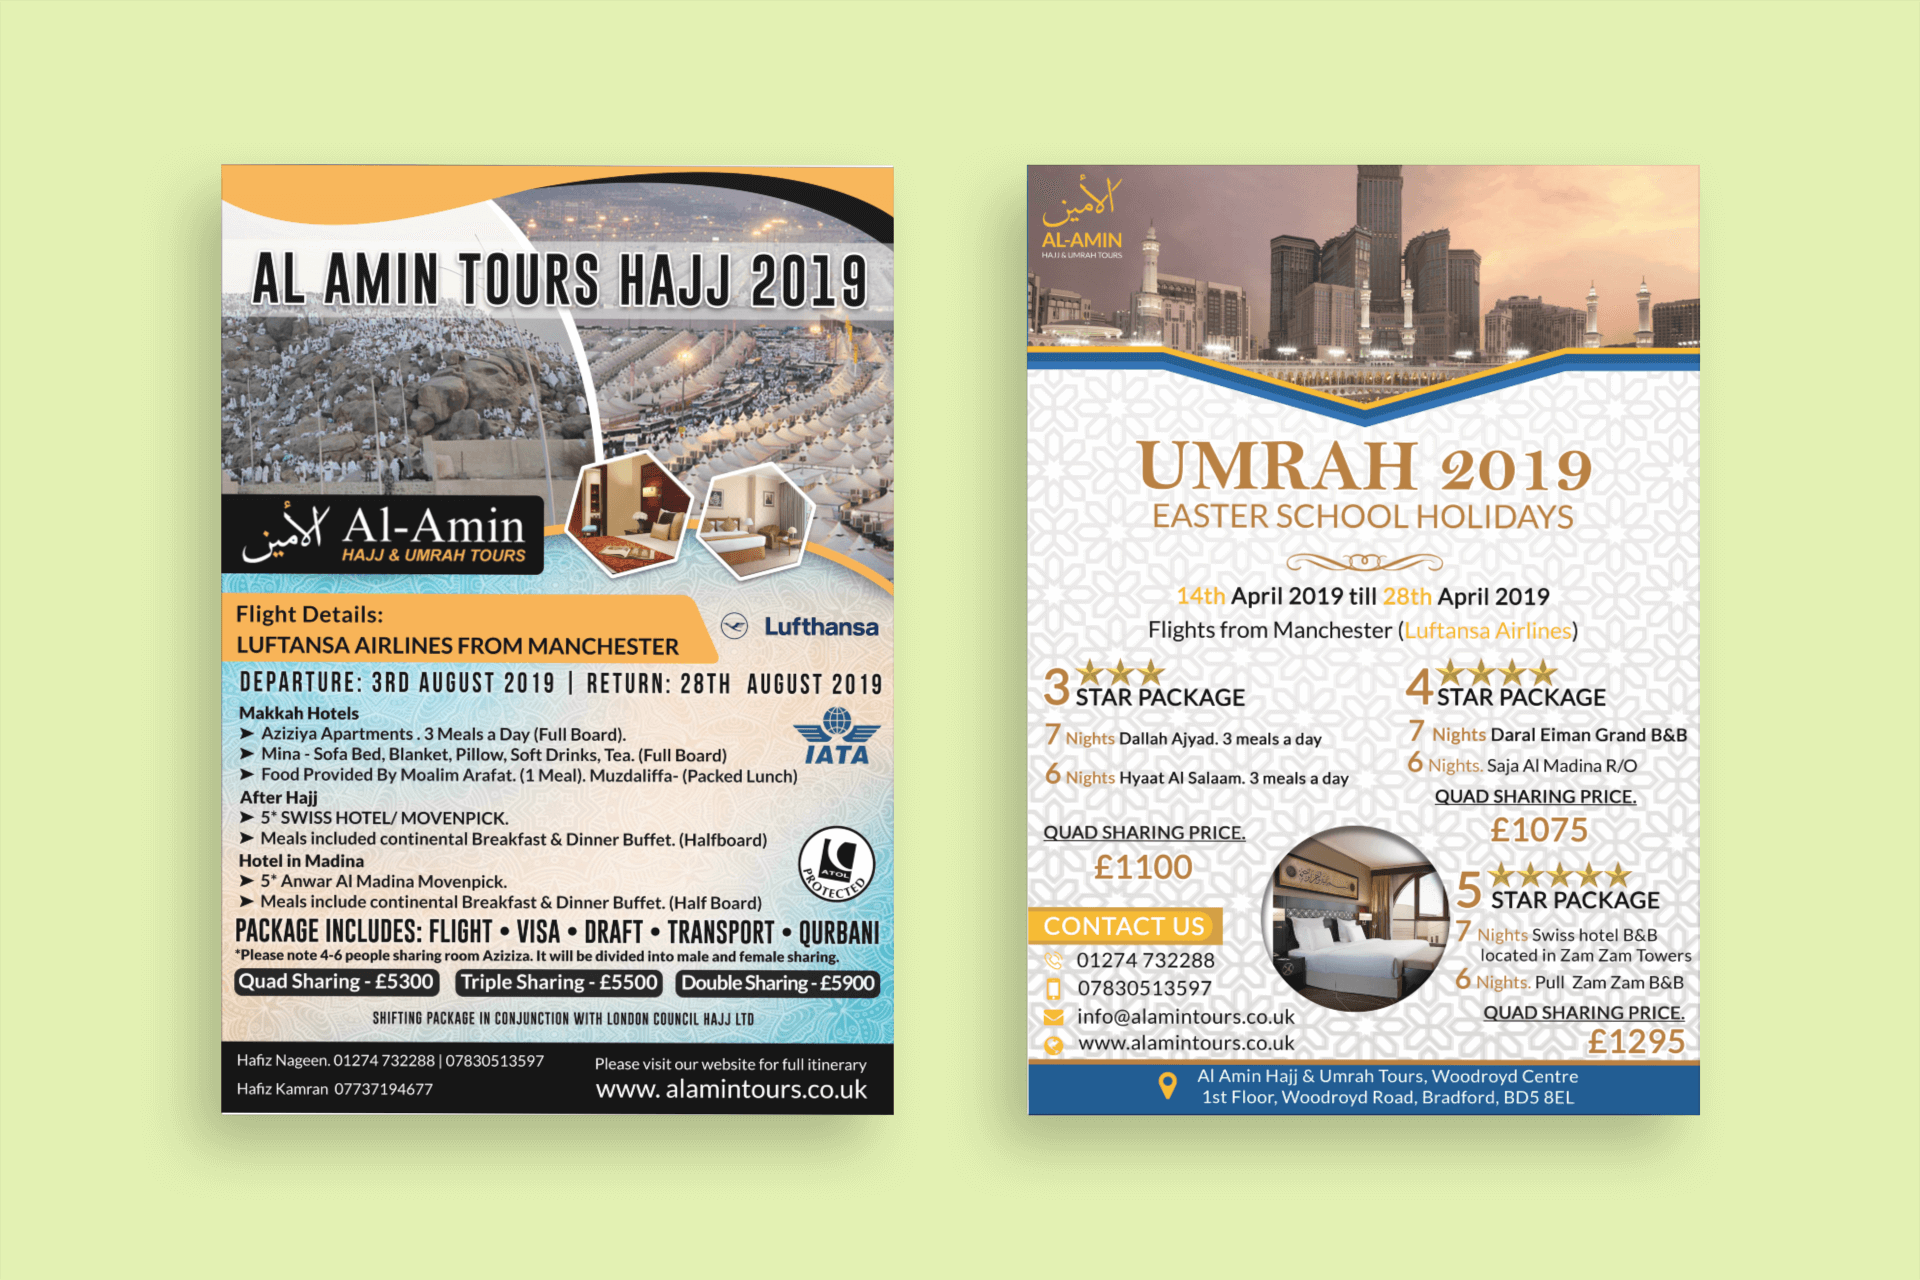 Al Mumin Flyer Designs